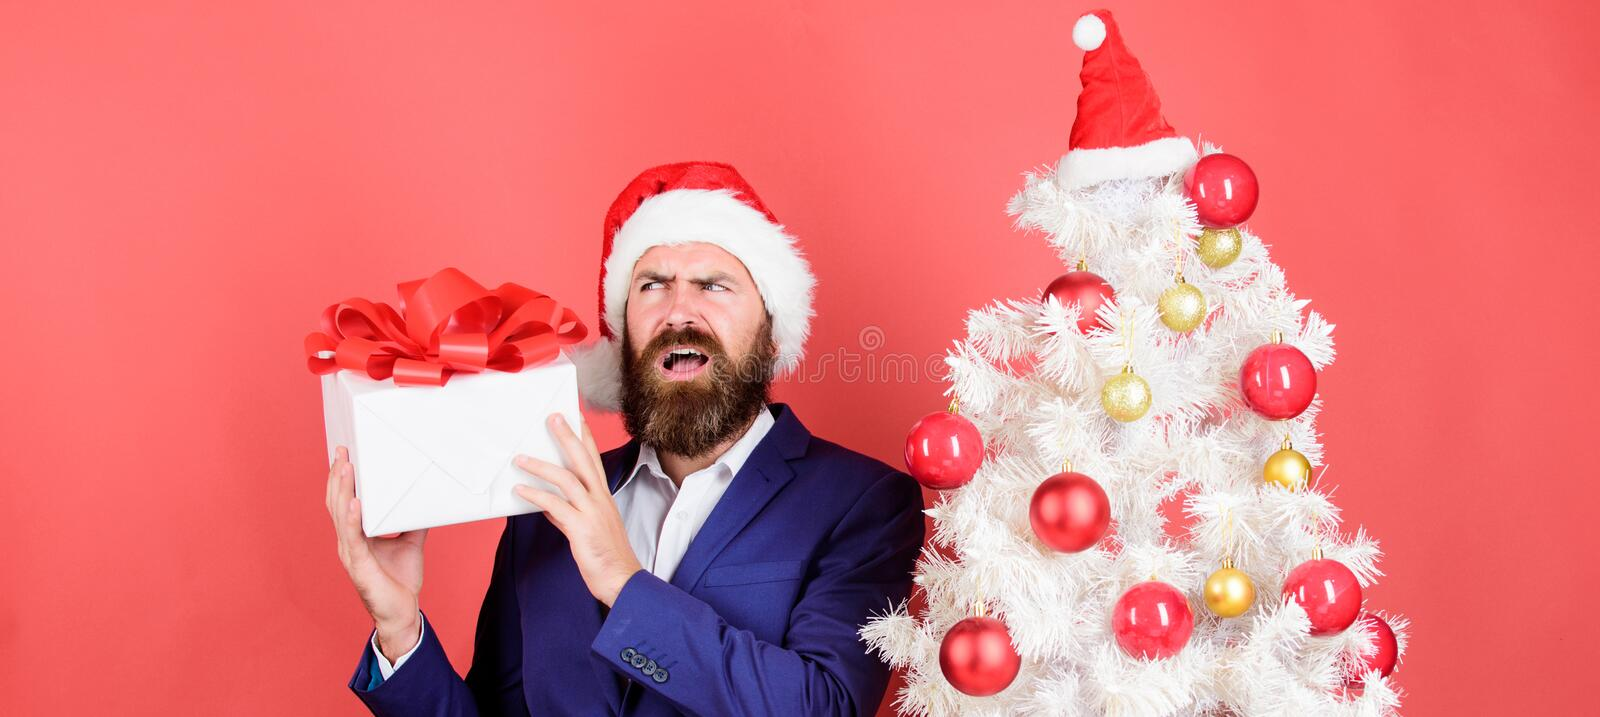 Man bearded hipster formal suit christmas tree hold gift box. Sharing kindness and happiness. Prepare gifts for everyone royalty free stock photos